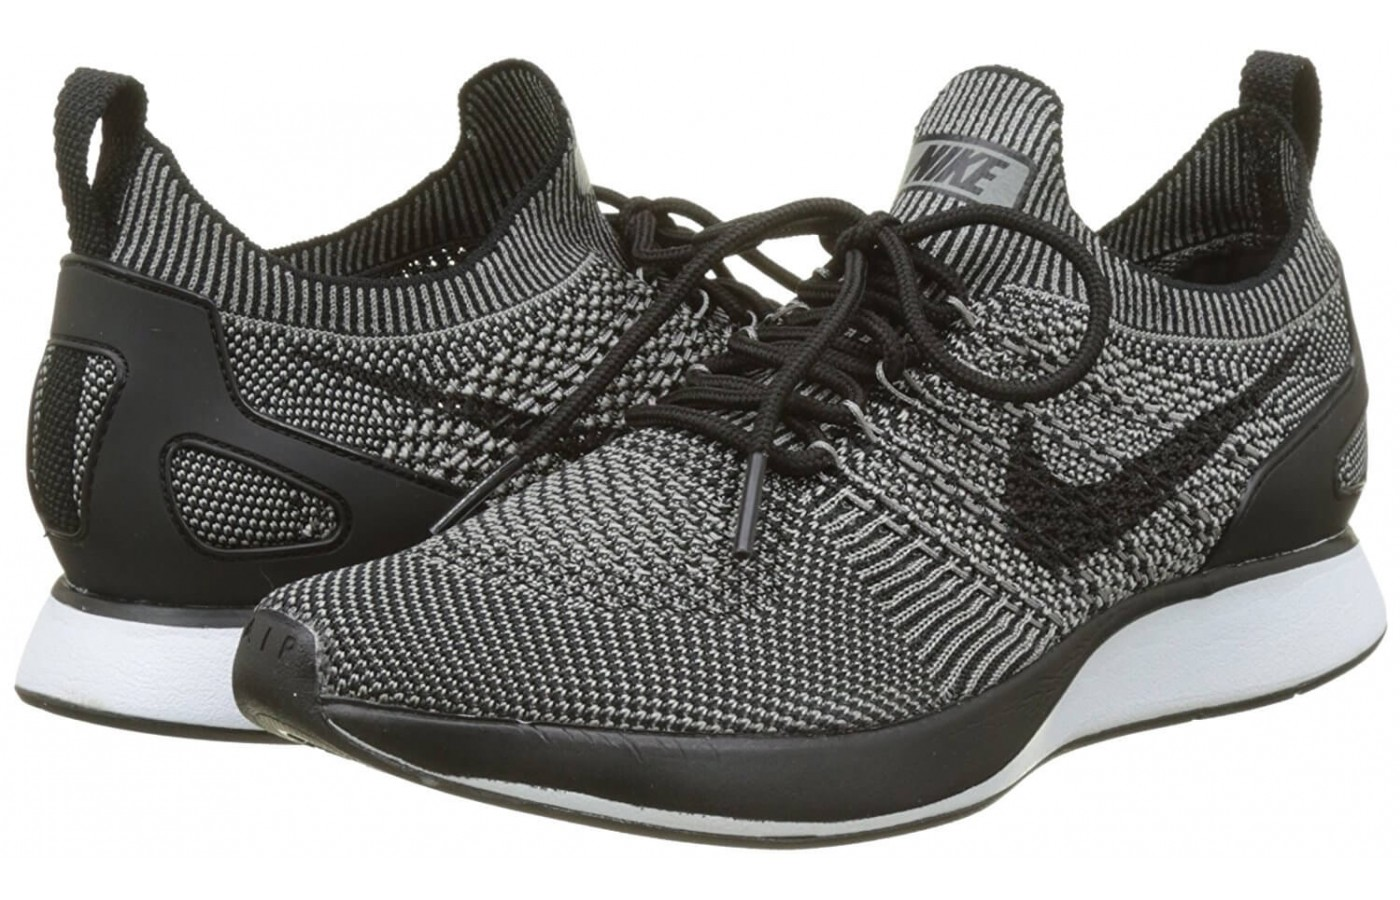 The The Nike Air Zoom Mariah Flyknit Racer features a sock-like upper